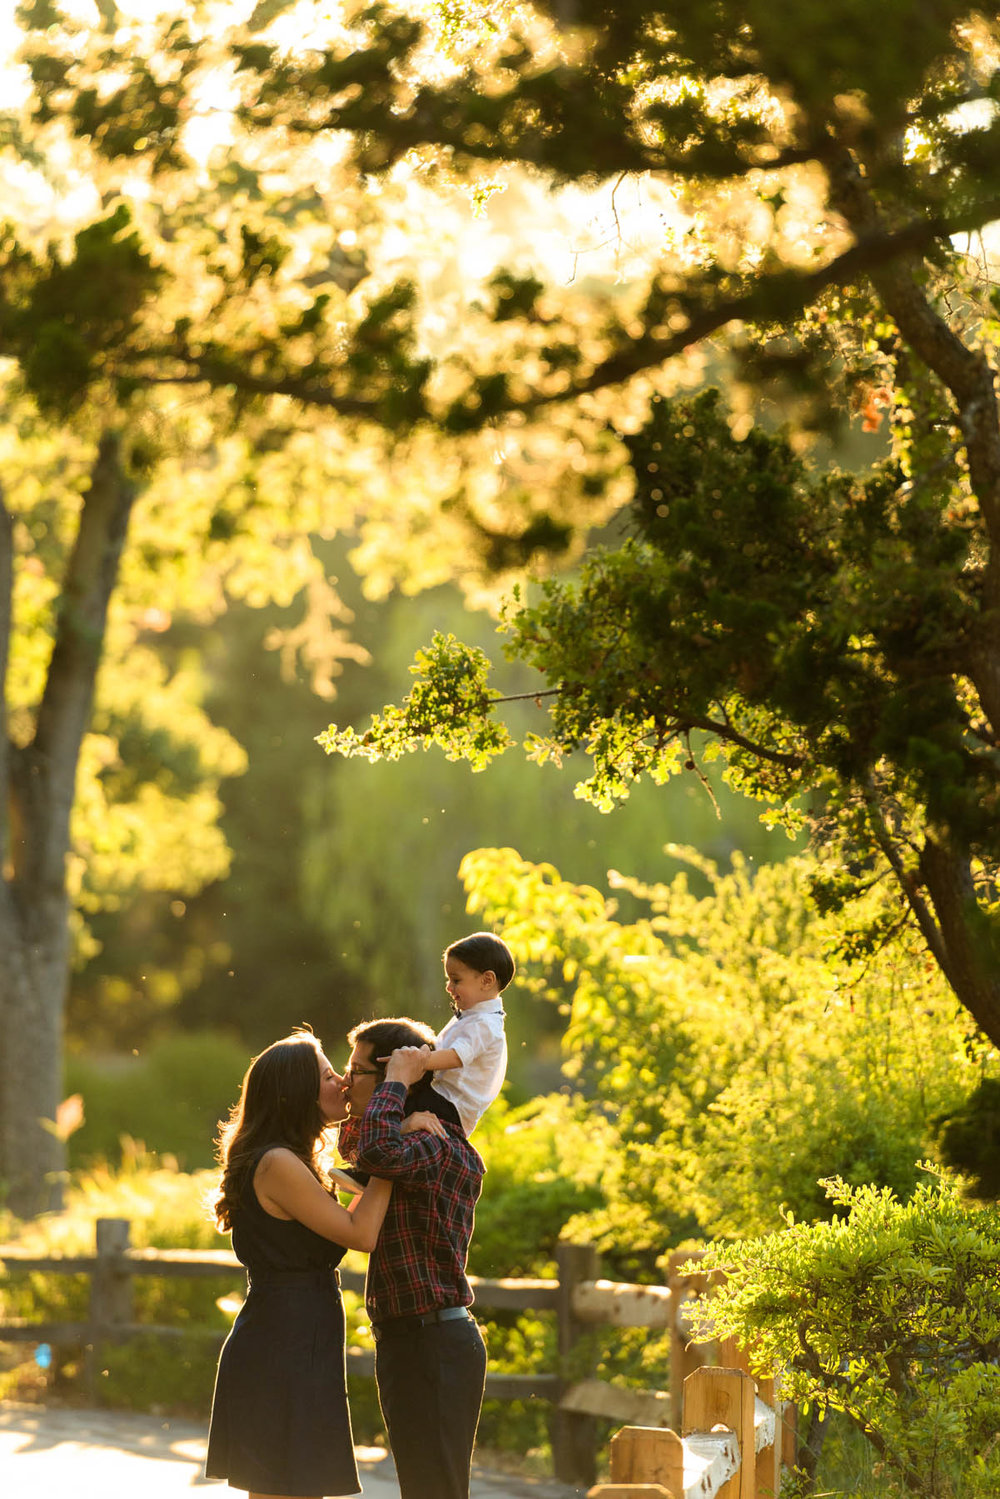 5081_Maryam_Z_Sharon_Park_Menlo_Park_Family_Portrait_Photography.jpg